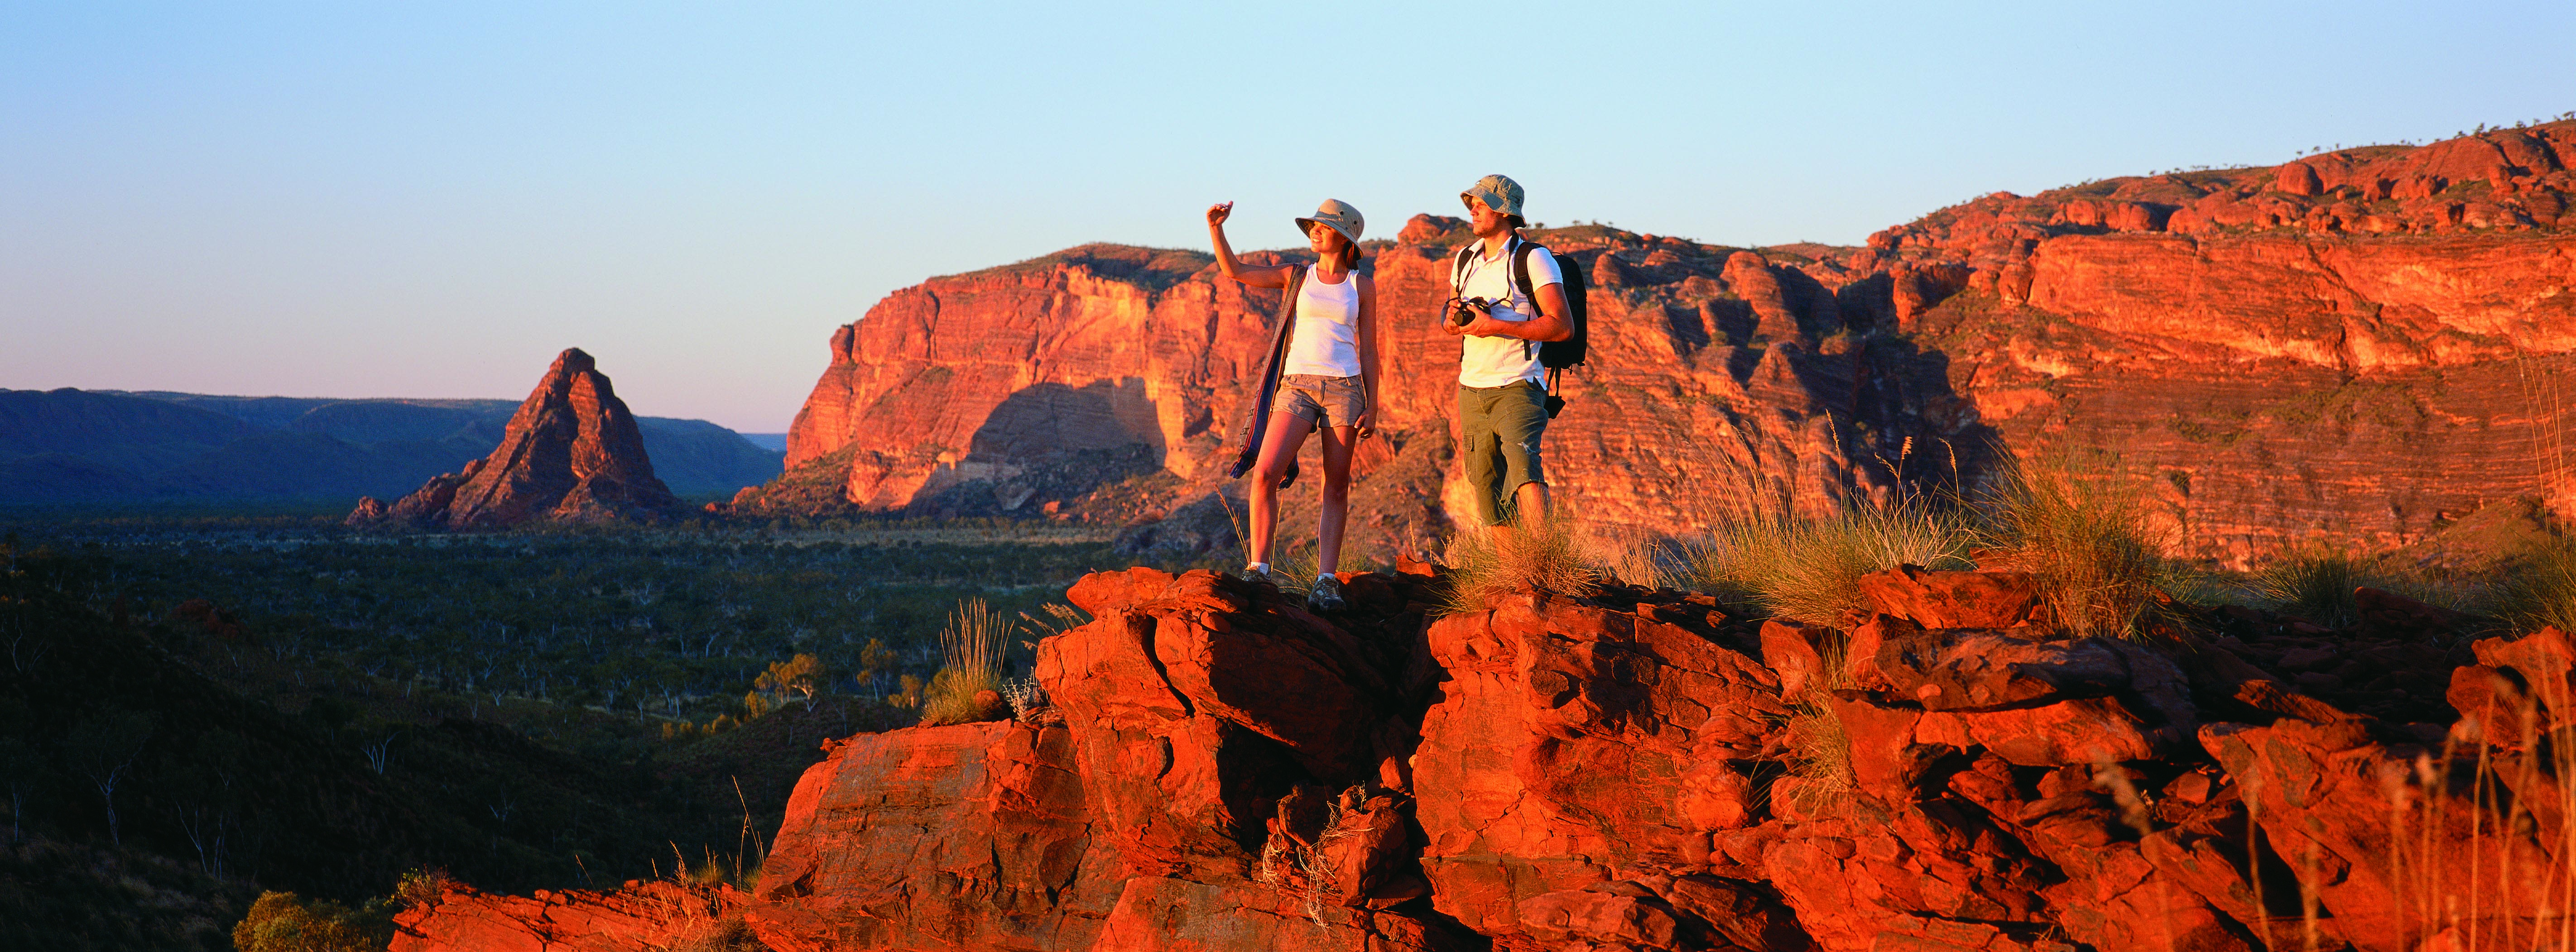 Couple holidaying in Purnululu, outback Australia